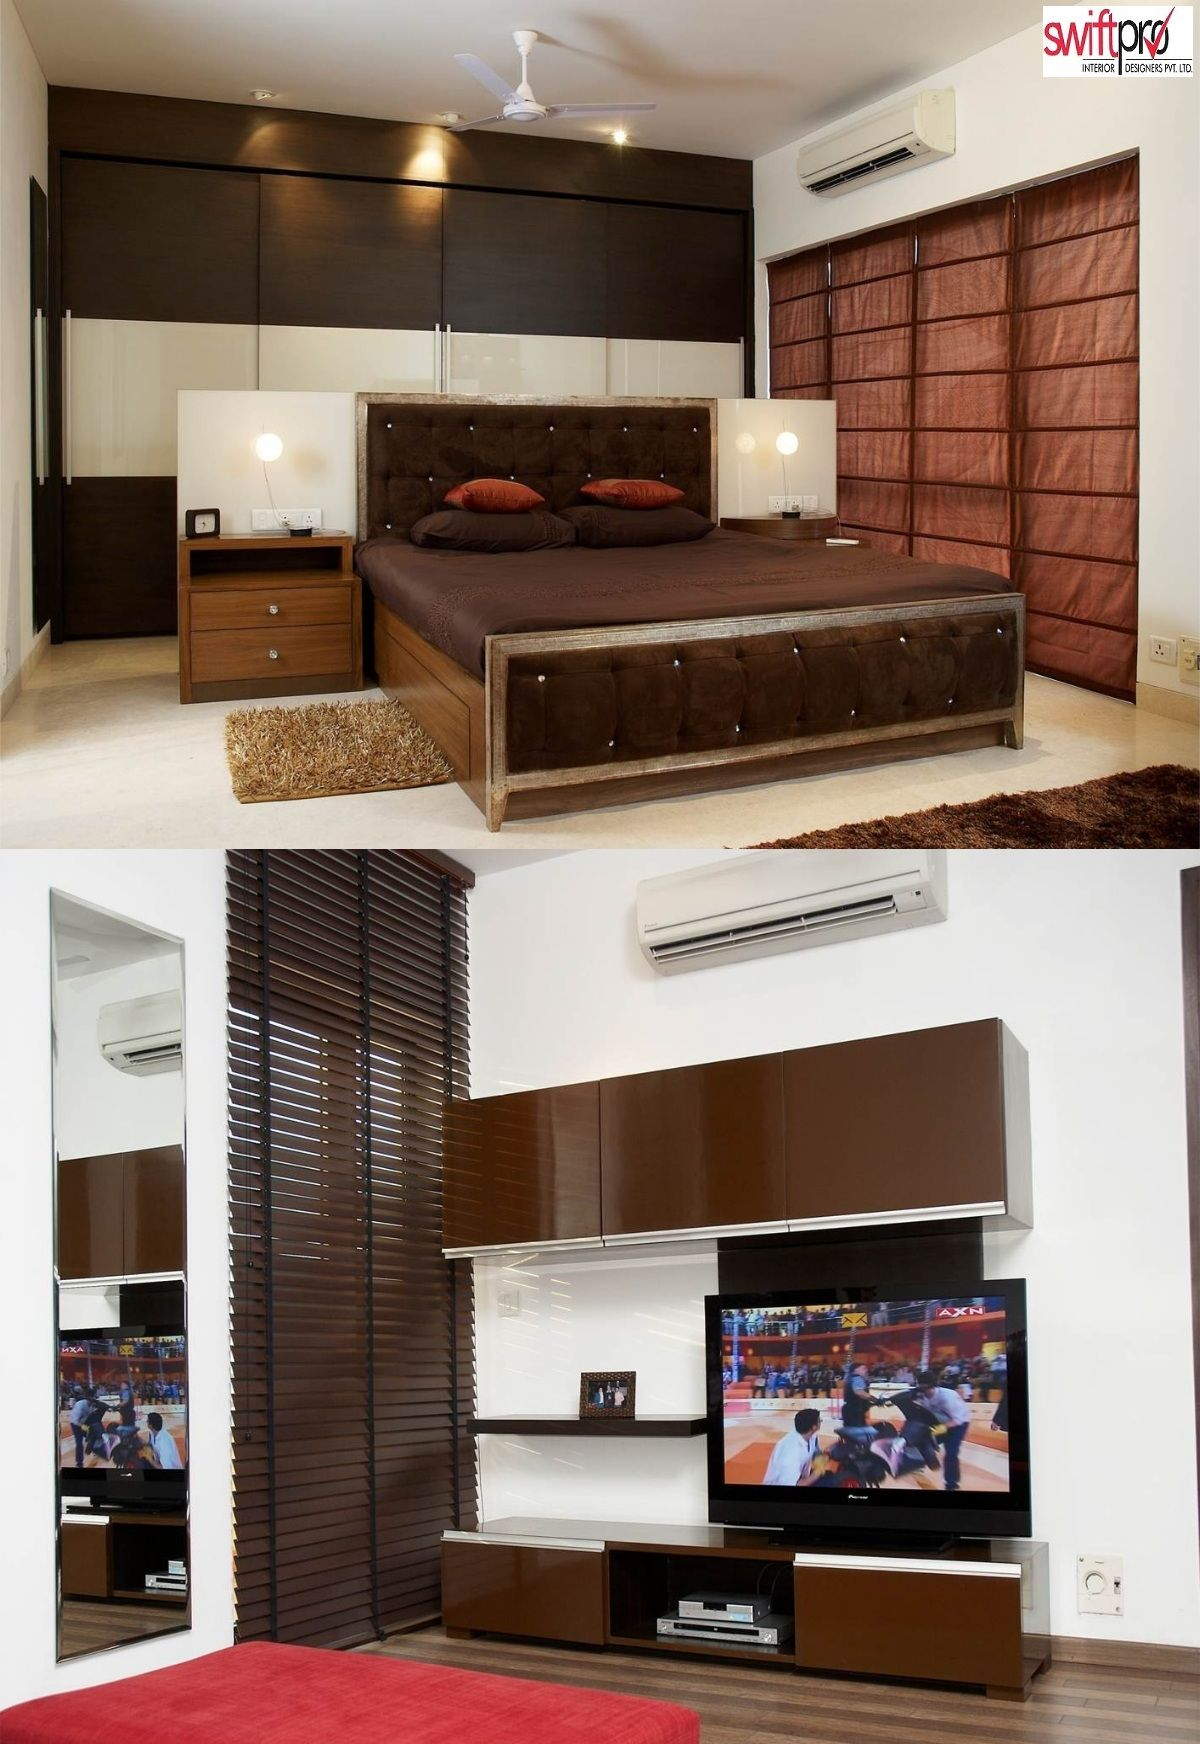 The best choice for interior fit out in delhi ncr interiordesigner works under stress also swiftpro designers swiftprointerior on pinterest rh